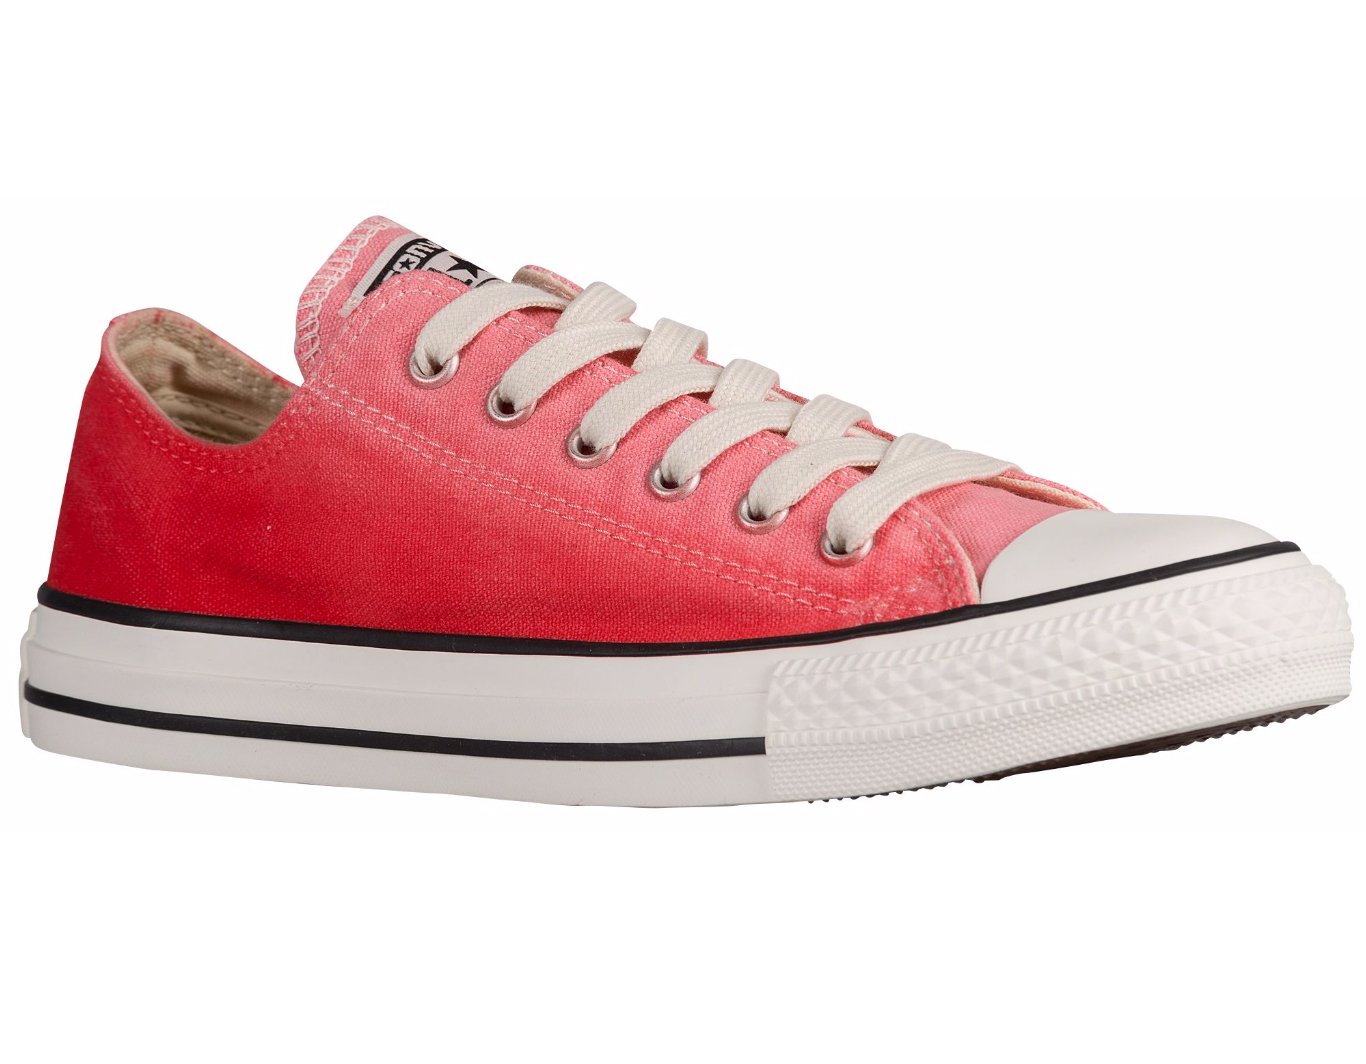 Best Places To Buy Converse Shoes